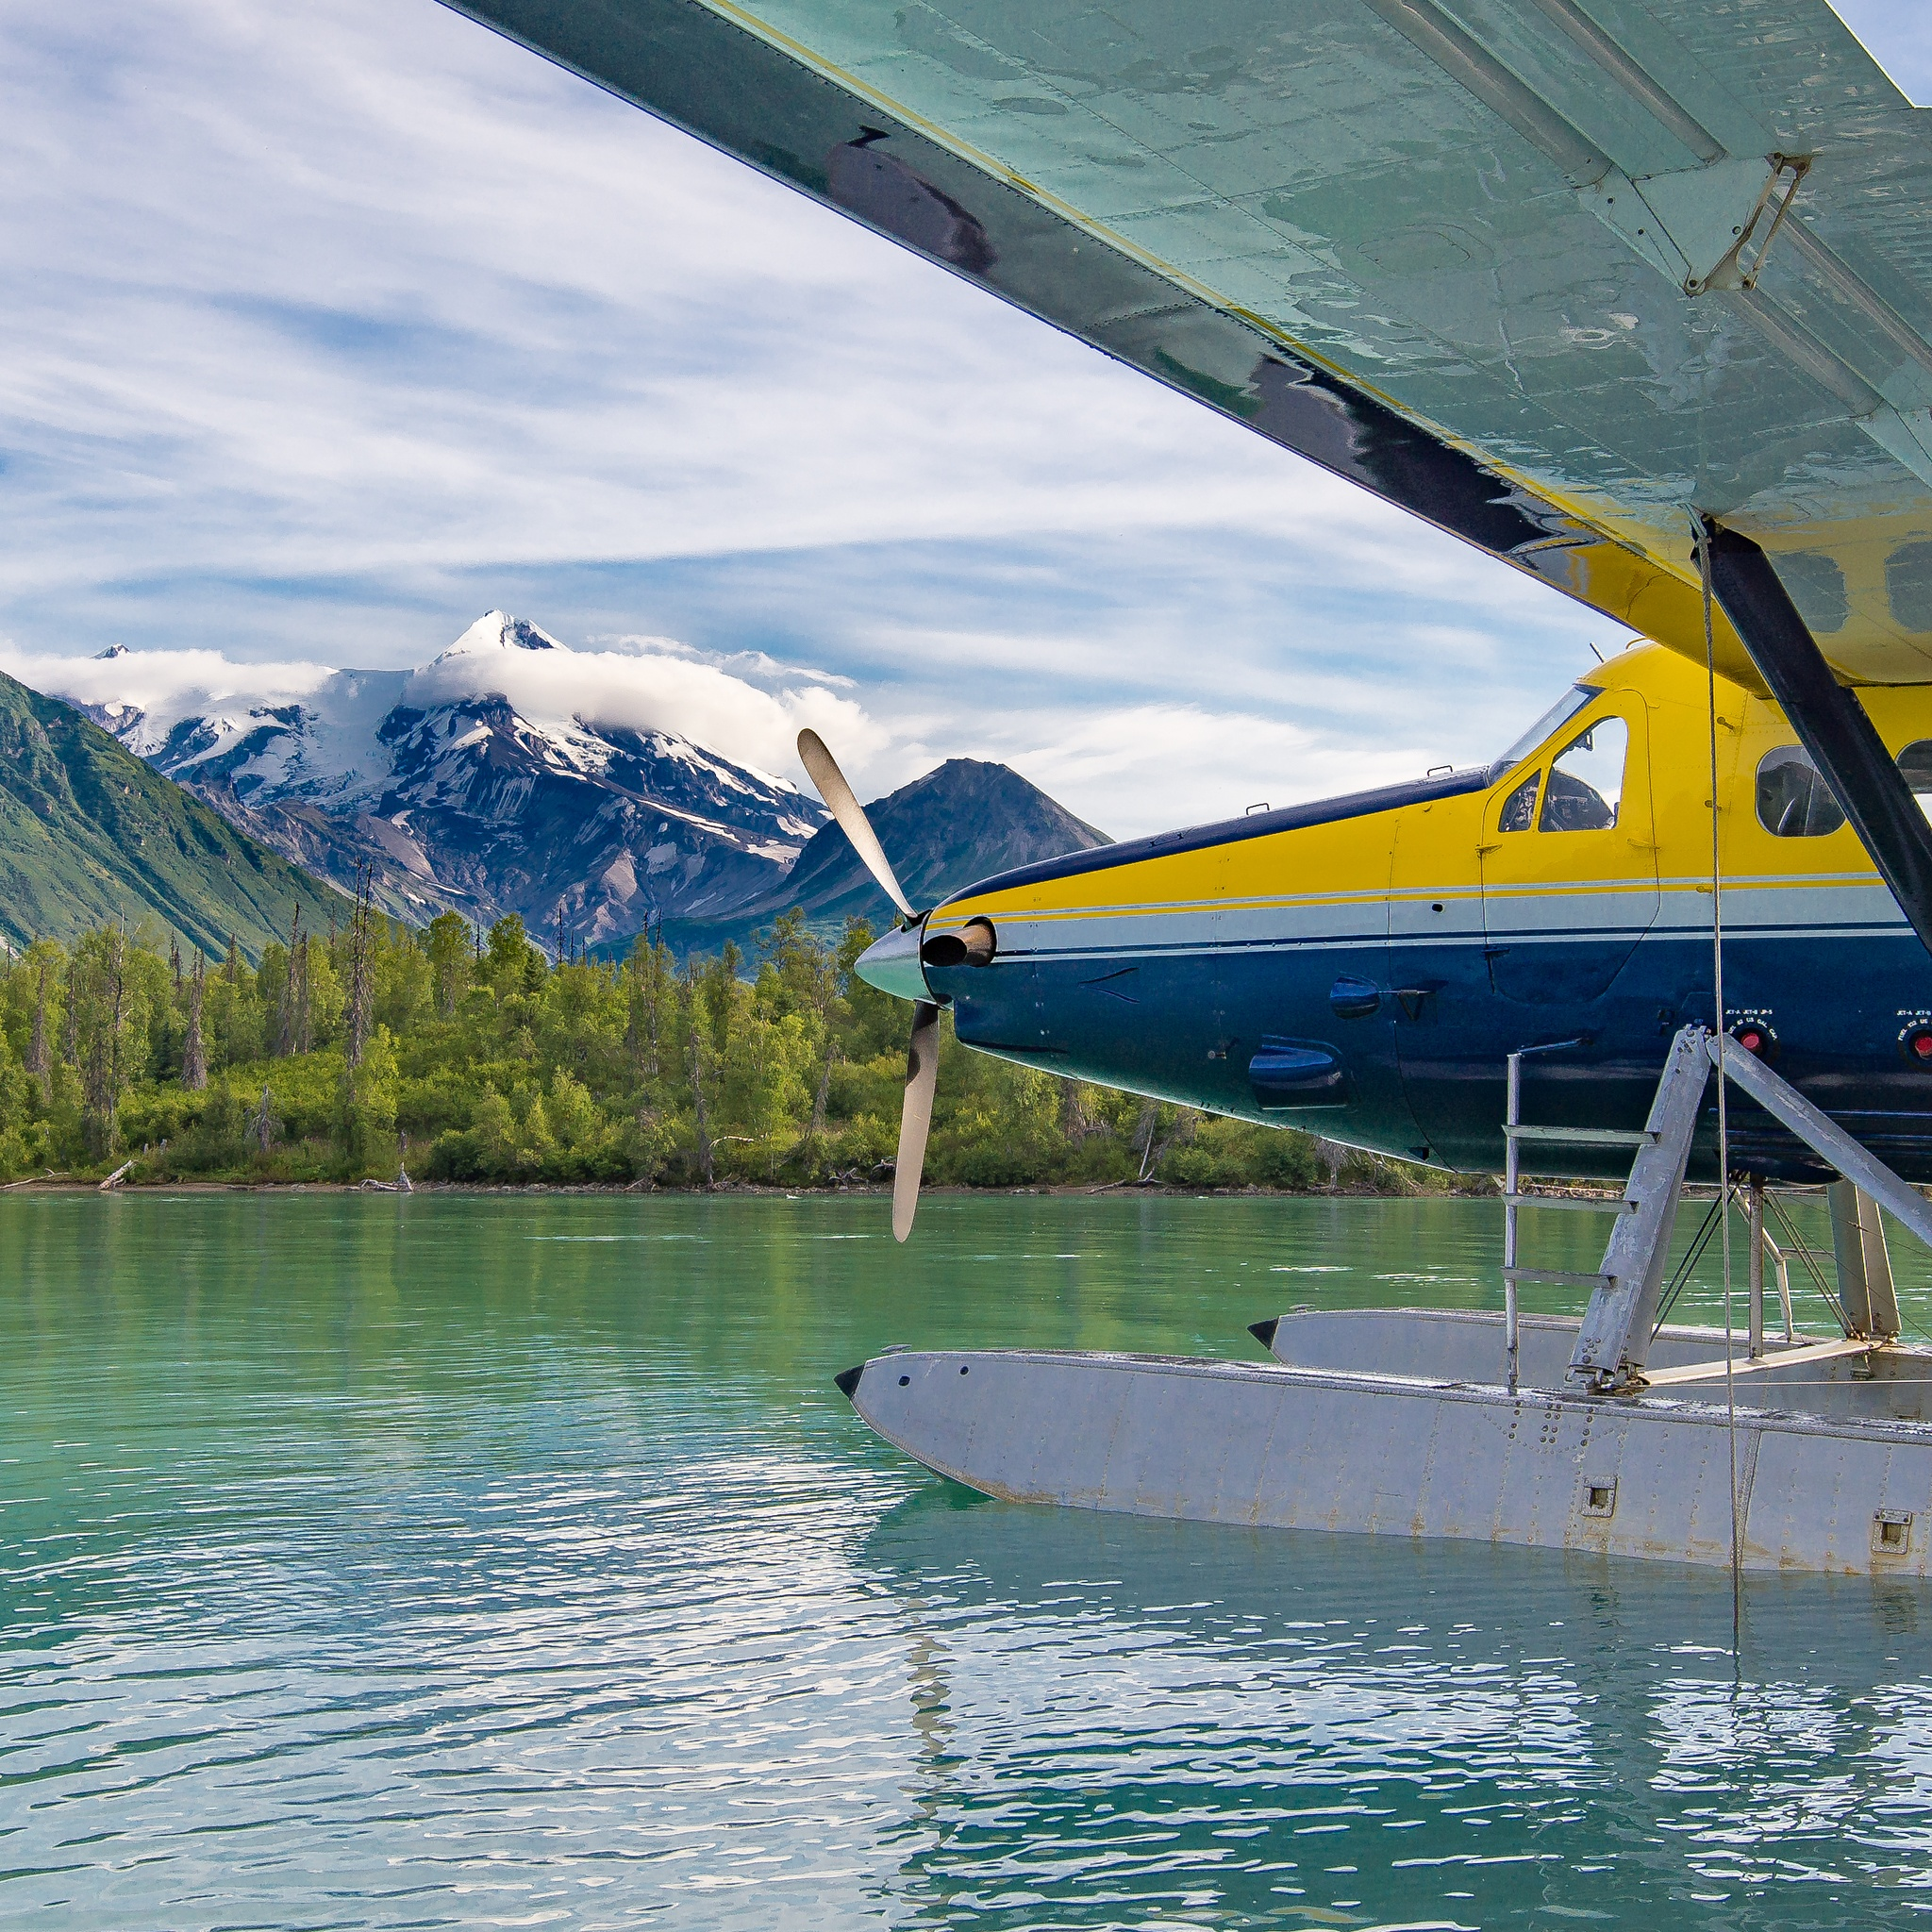 Fly-in Crescent Lake by Curt Wells